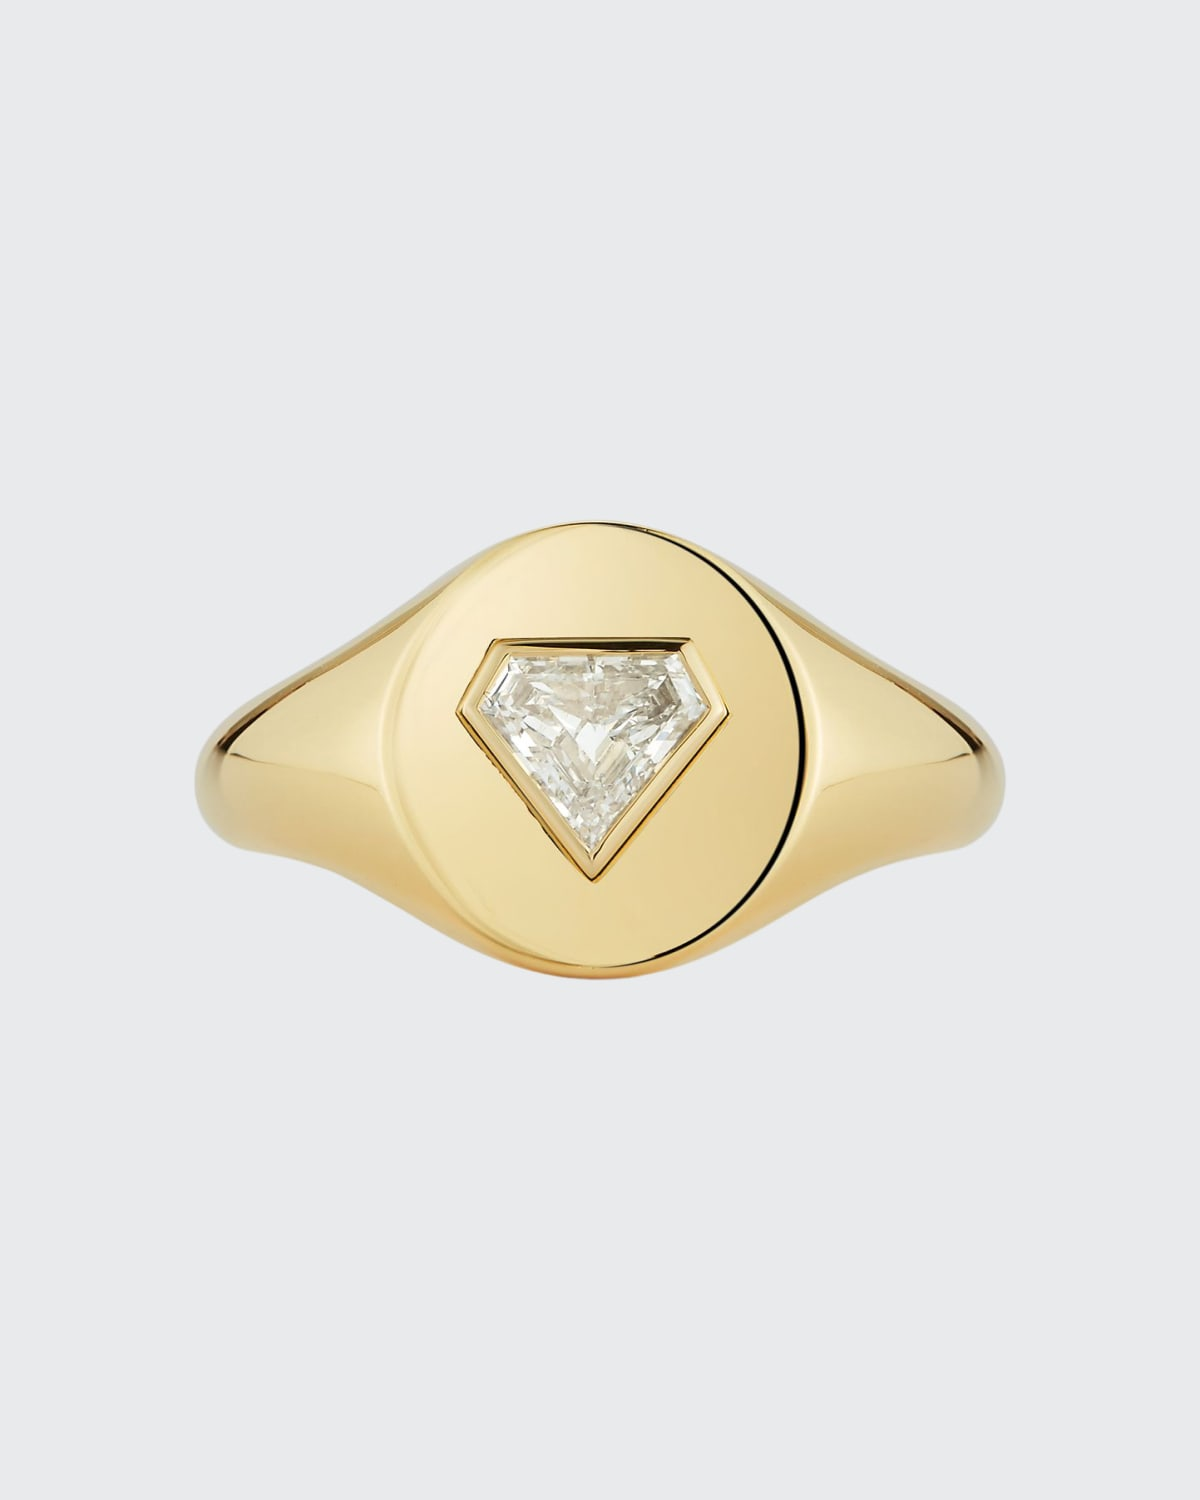 Gold One Of A Kind Prive Signet Ring With Bezel Set Shield Diamond 0.42 ct. Diamond